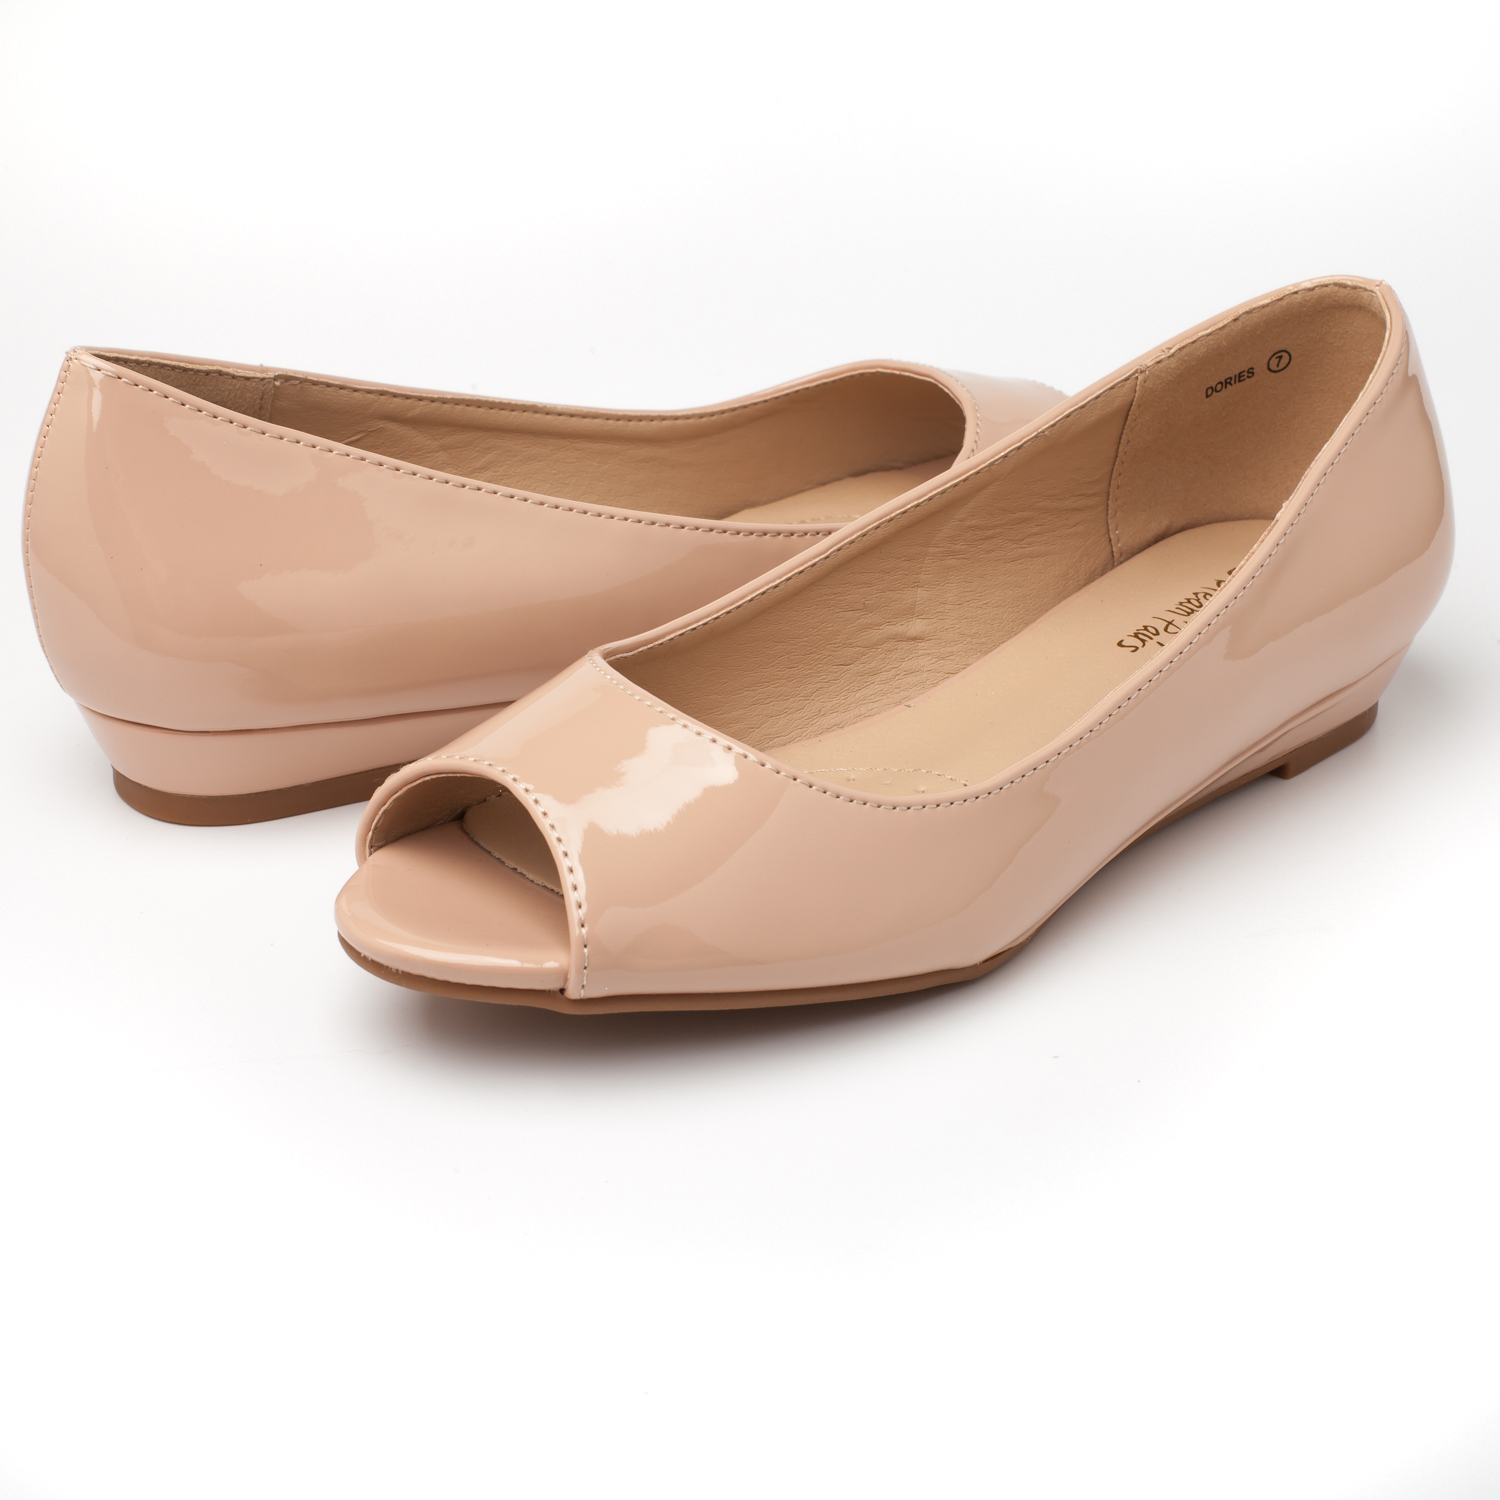 DREAM-PAIRS-Womens-Ballet-Flats-Low-Heel-Open-Toe-Slip-On-Dress-Flat-Shoes thumbnail 31